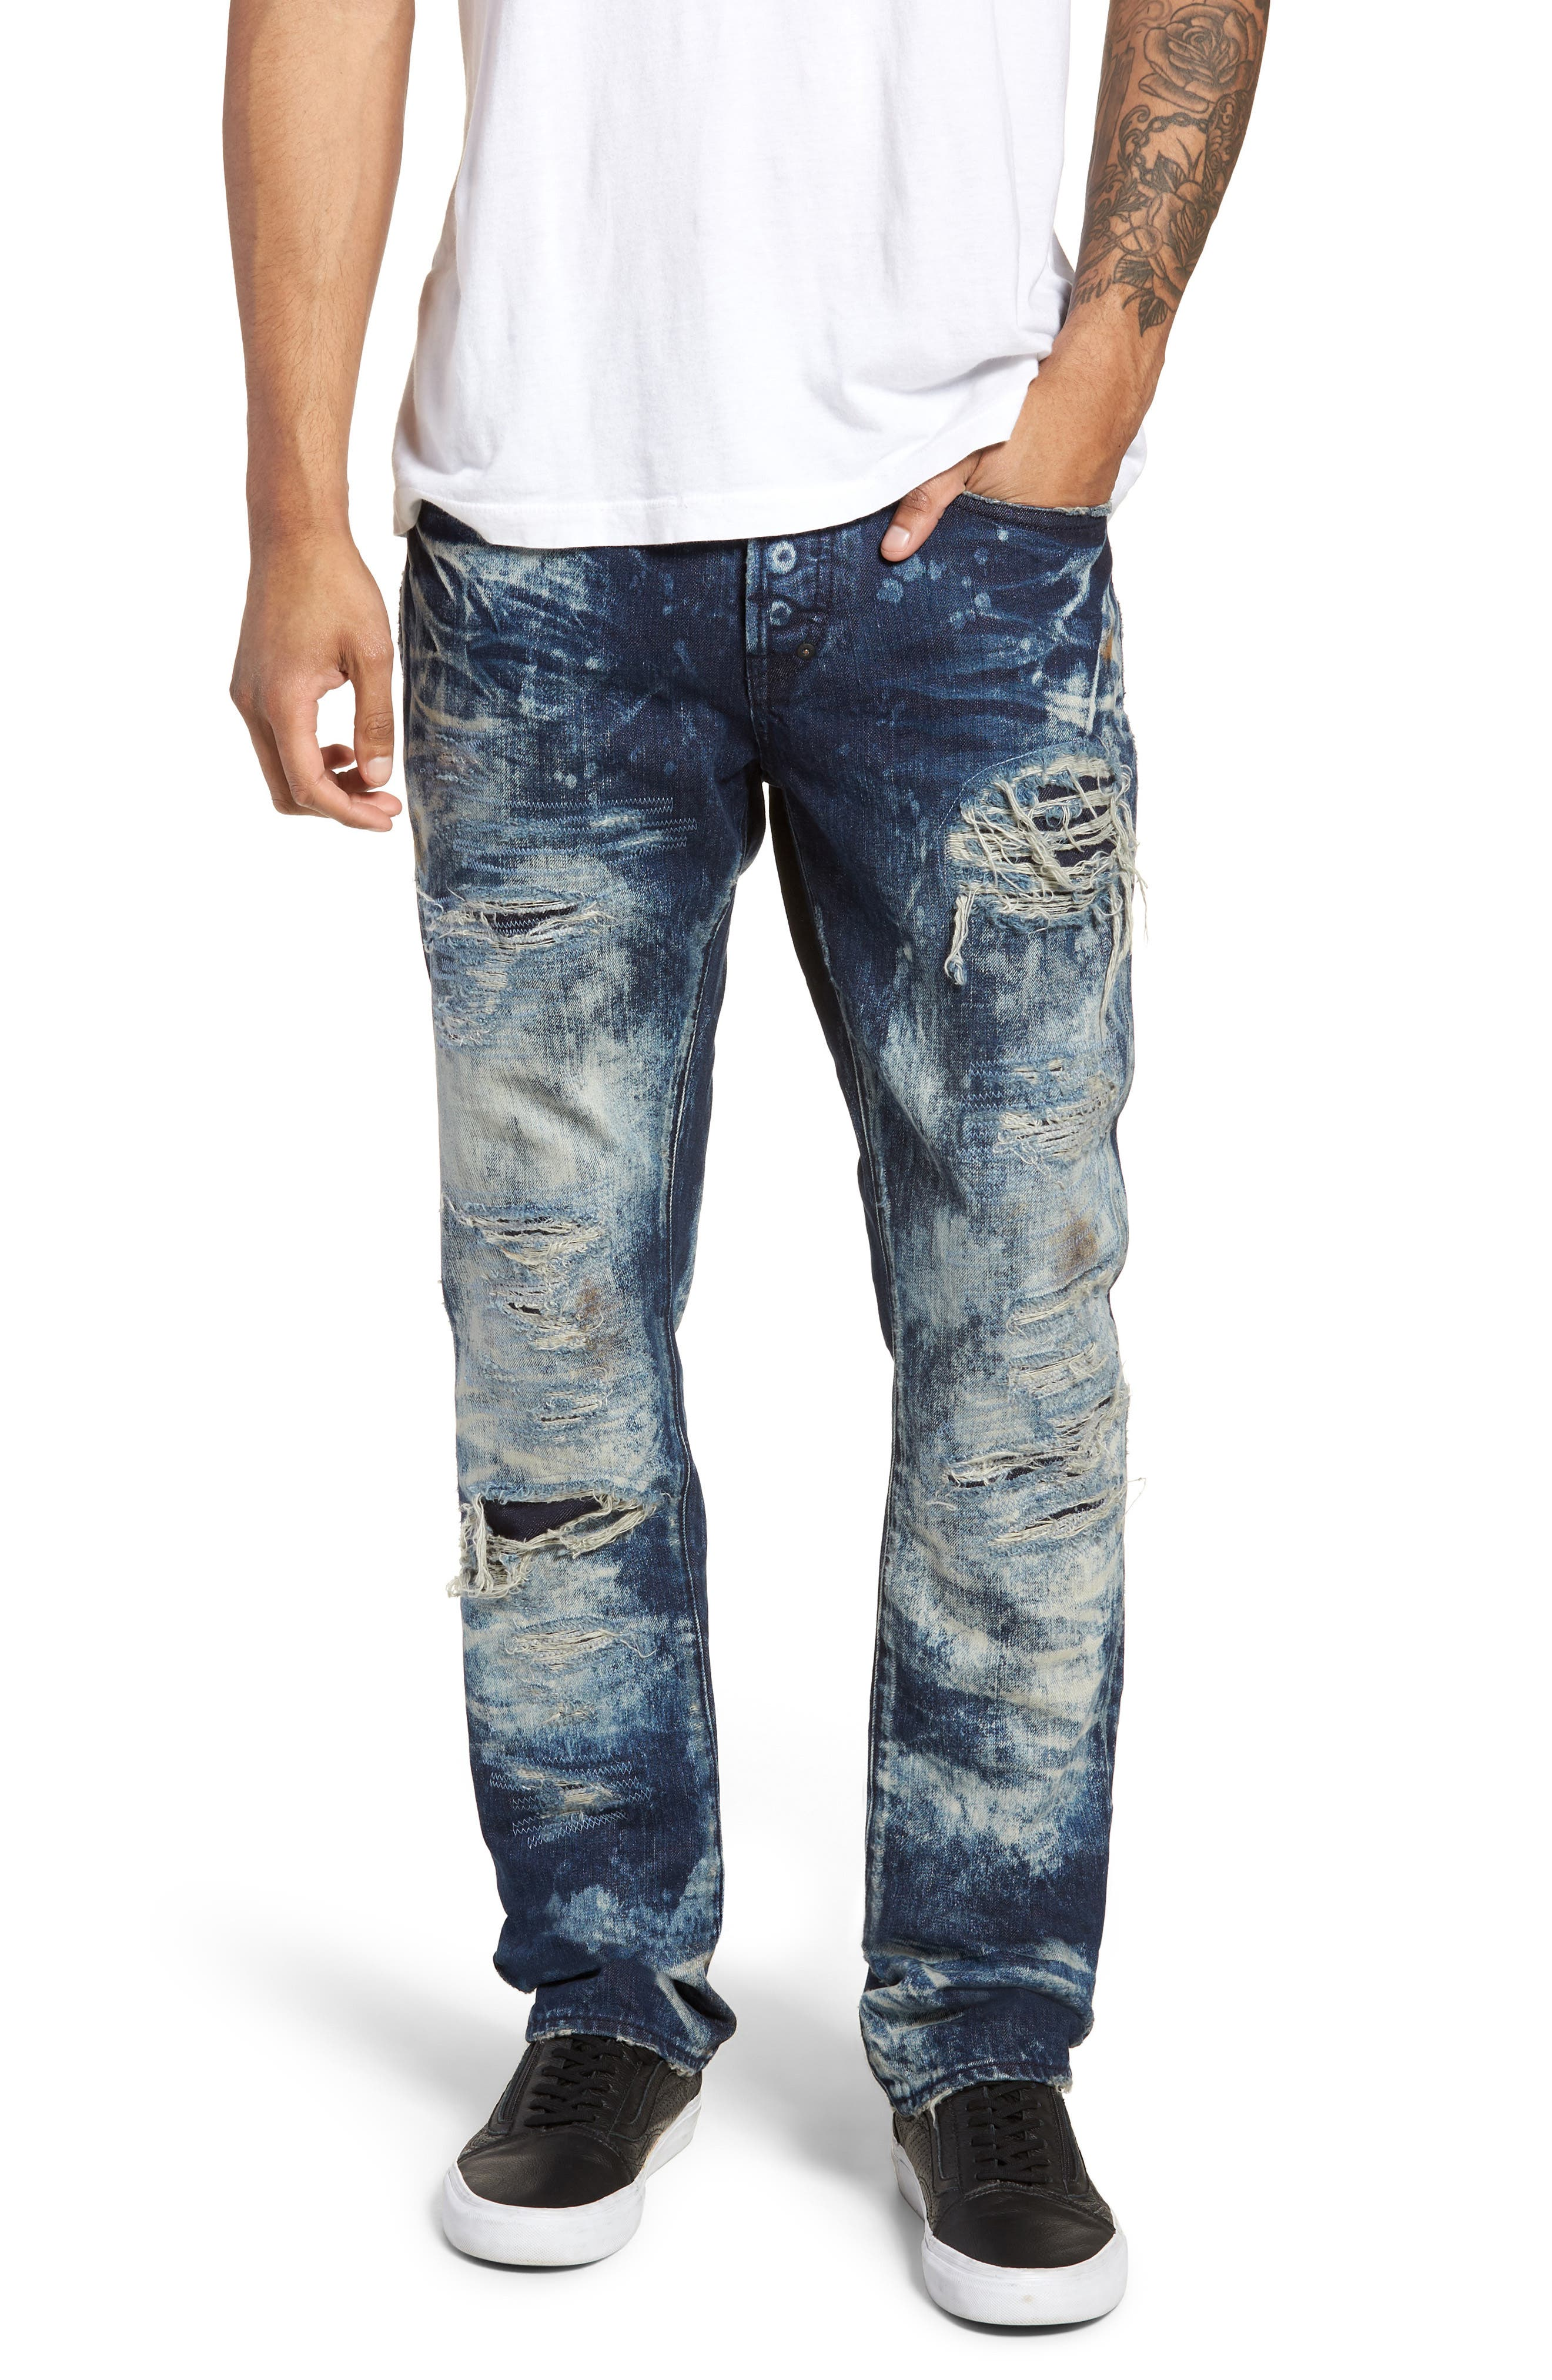 Le Sabre Slim Fit Jeans,                             Main thumbnail 1, color,                             Consolation